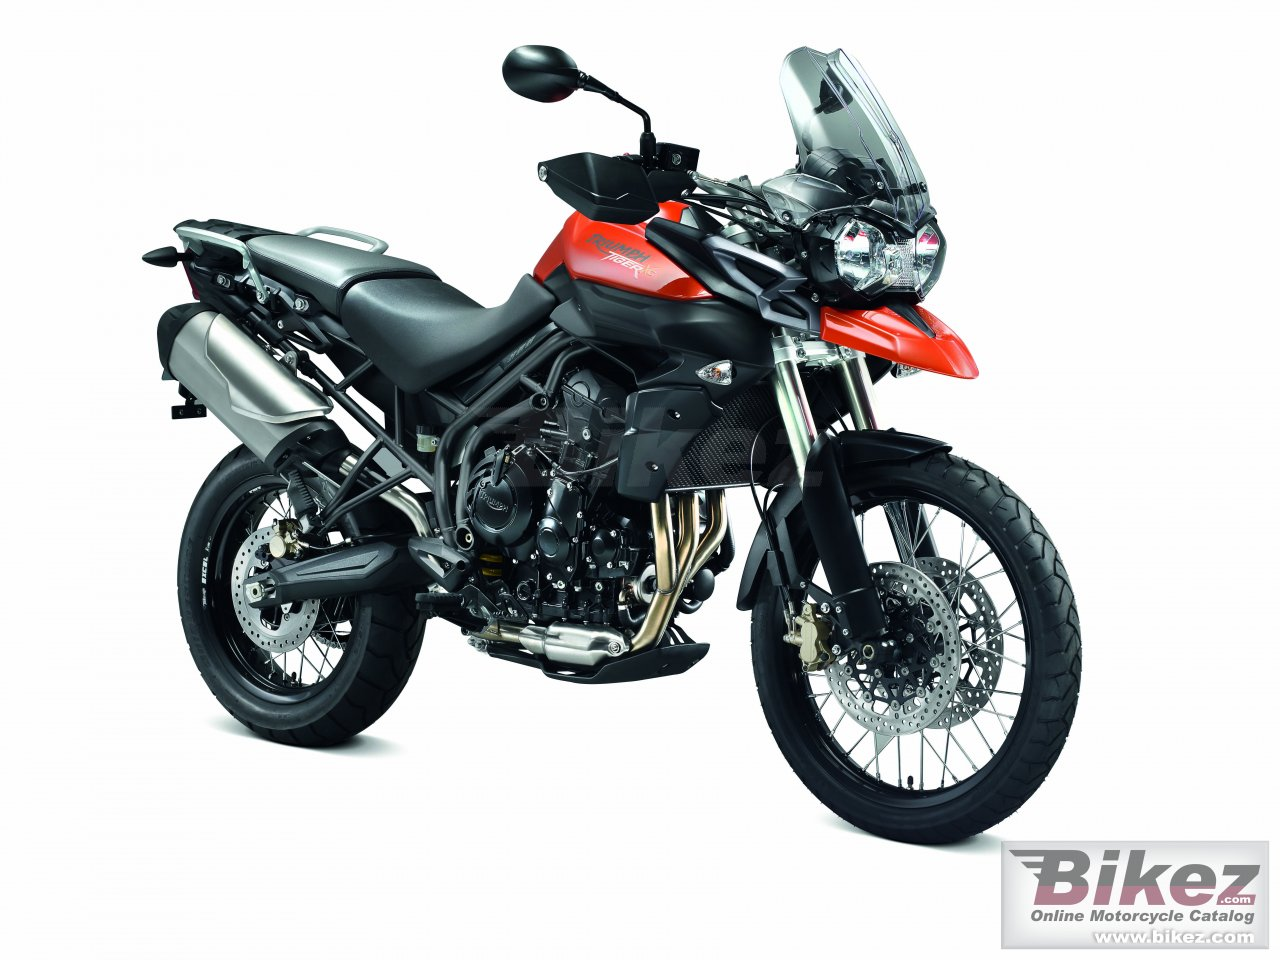 Big Triumph tiger 800xc picture and wallpaper from Bikez.com